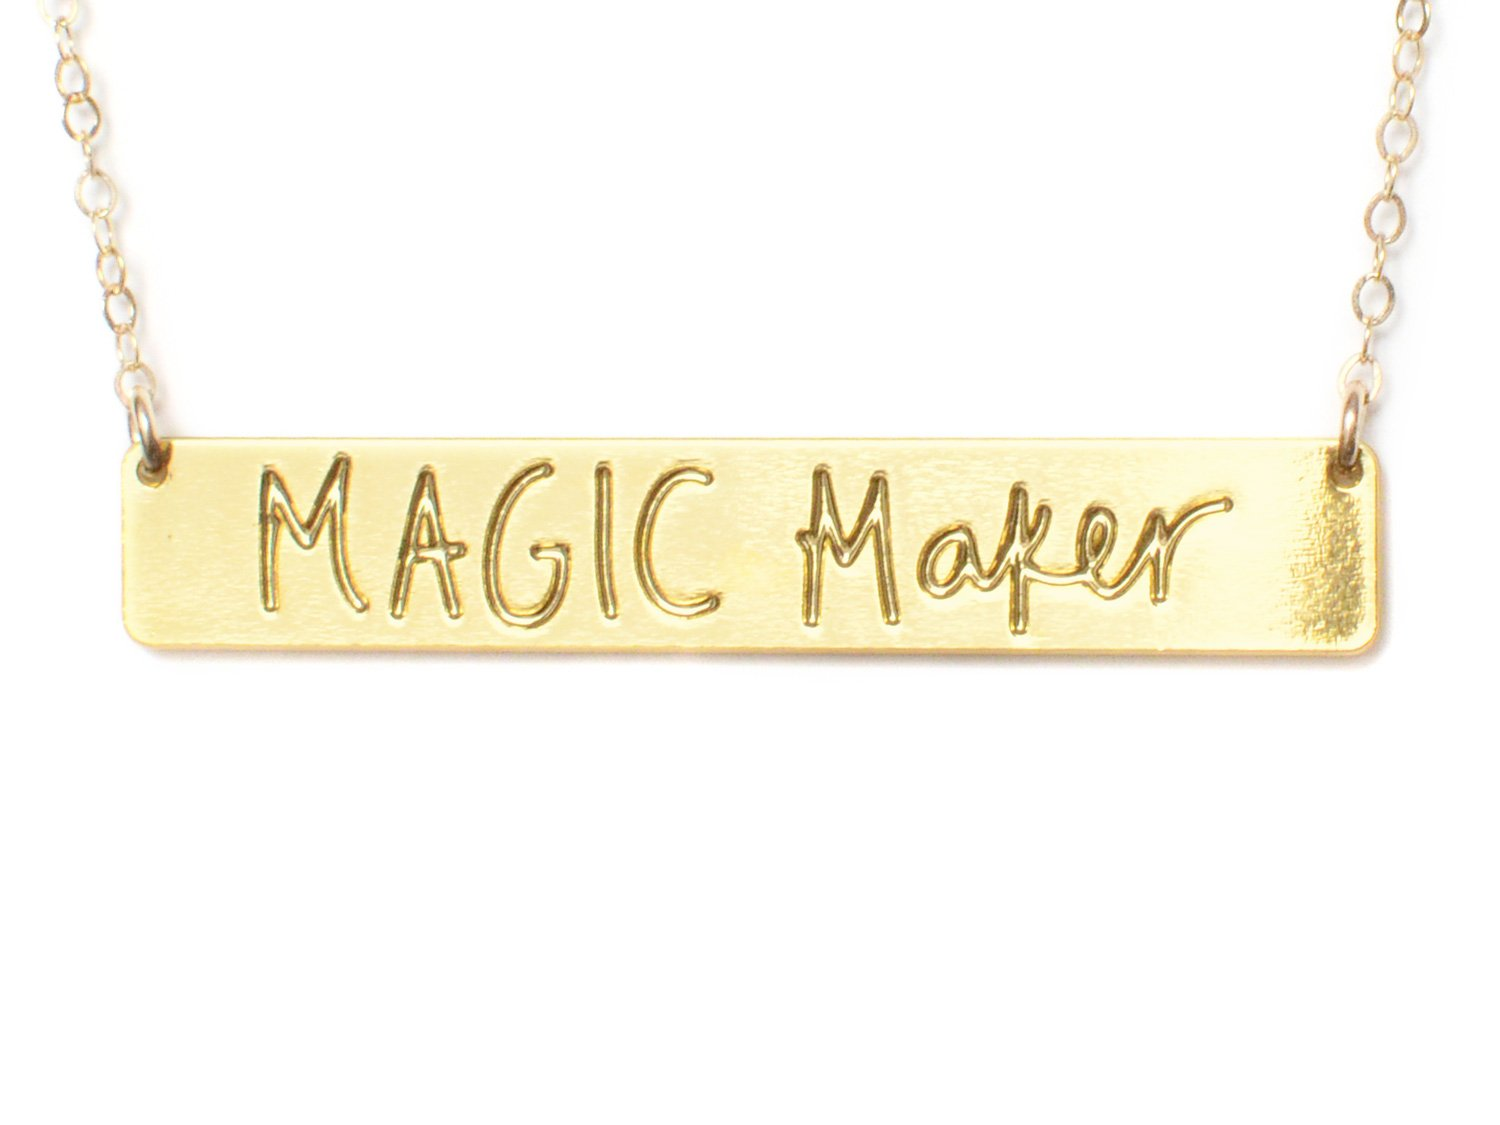 Magic Maker Necklace - Brevity Jewelry - Made in USA - Affordable Gold and Silver Jewelry